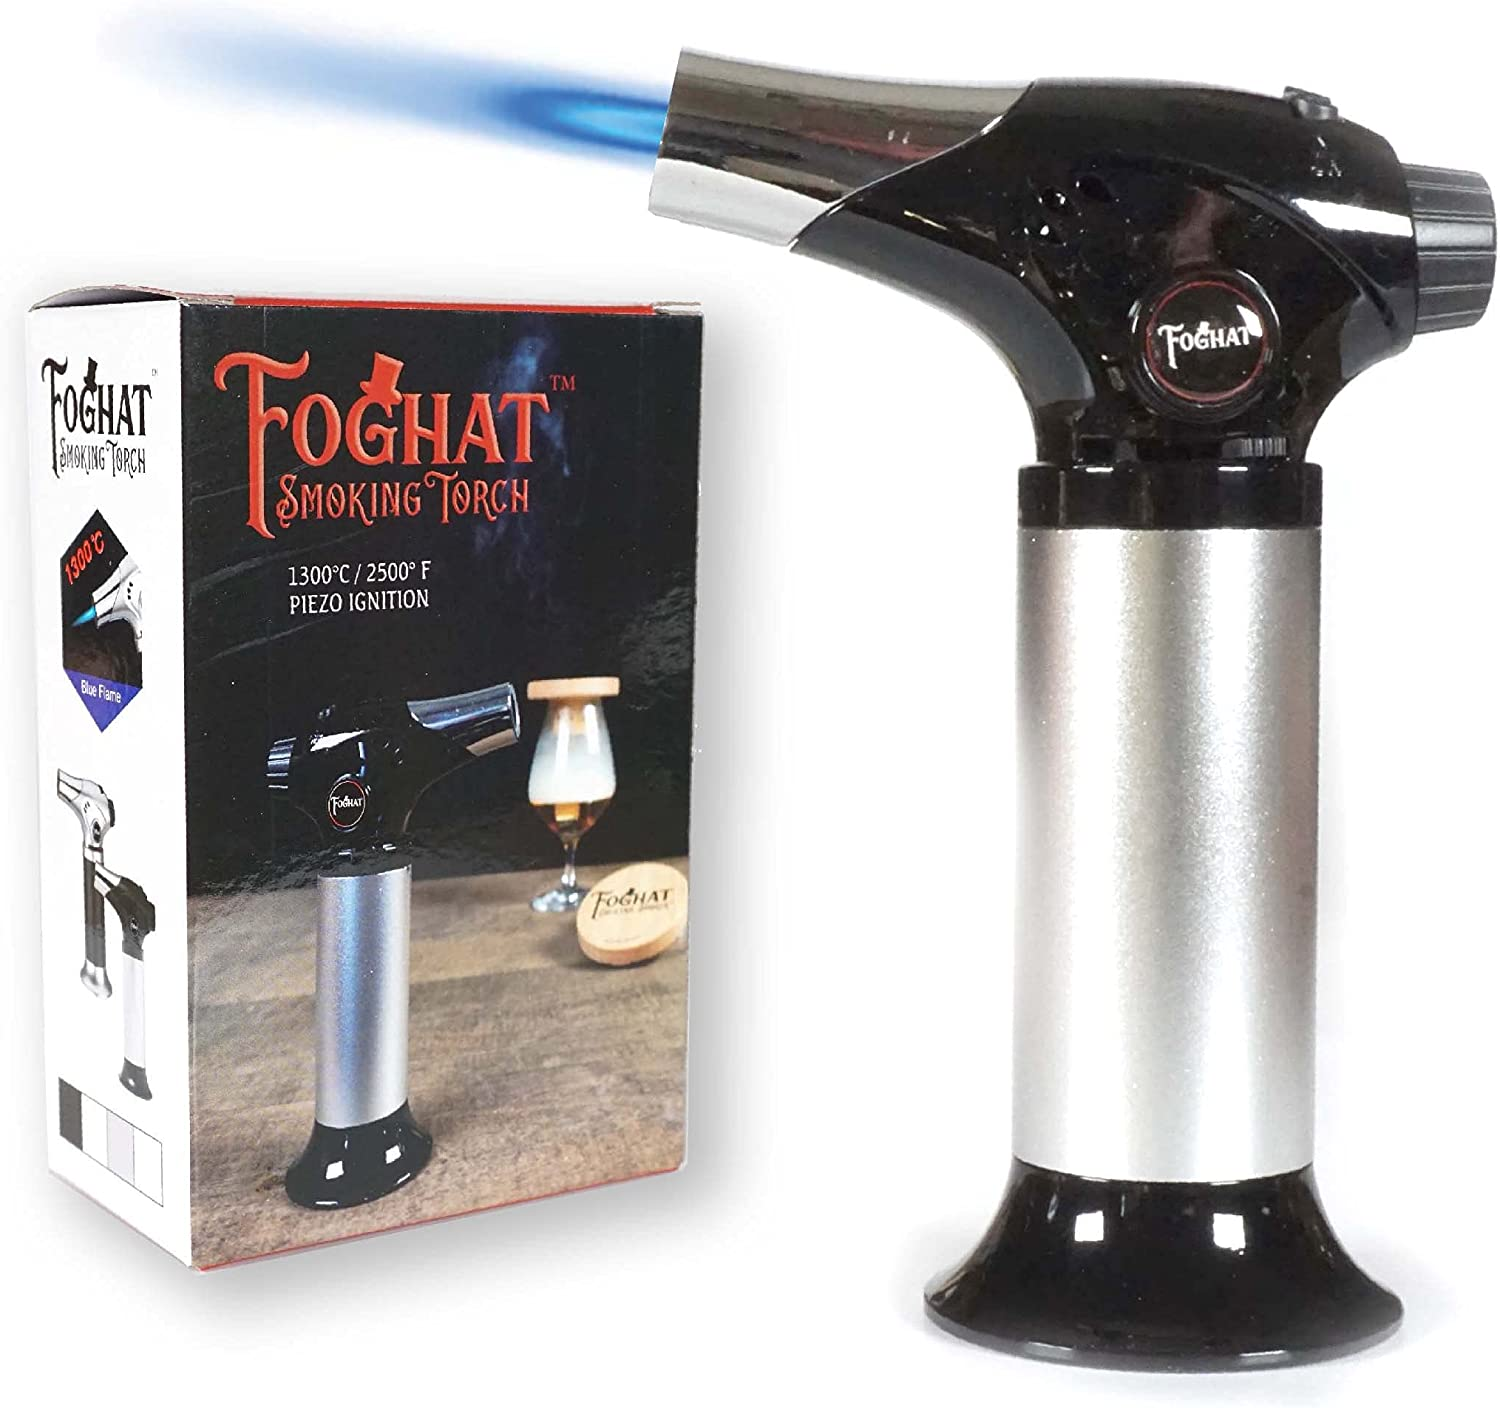 Foghat Smoking discount Torch for Smoked Save money Charcuterie Cocktails or Smoke